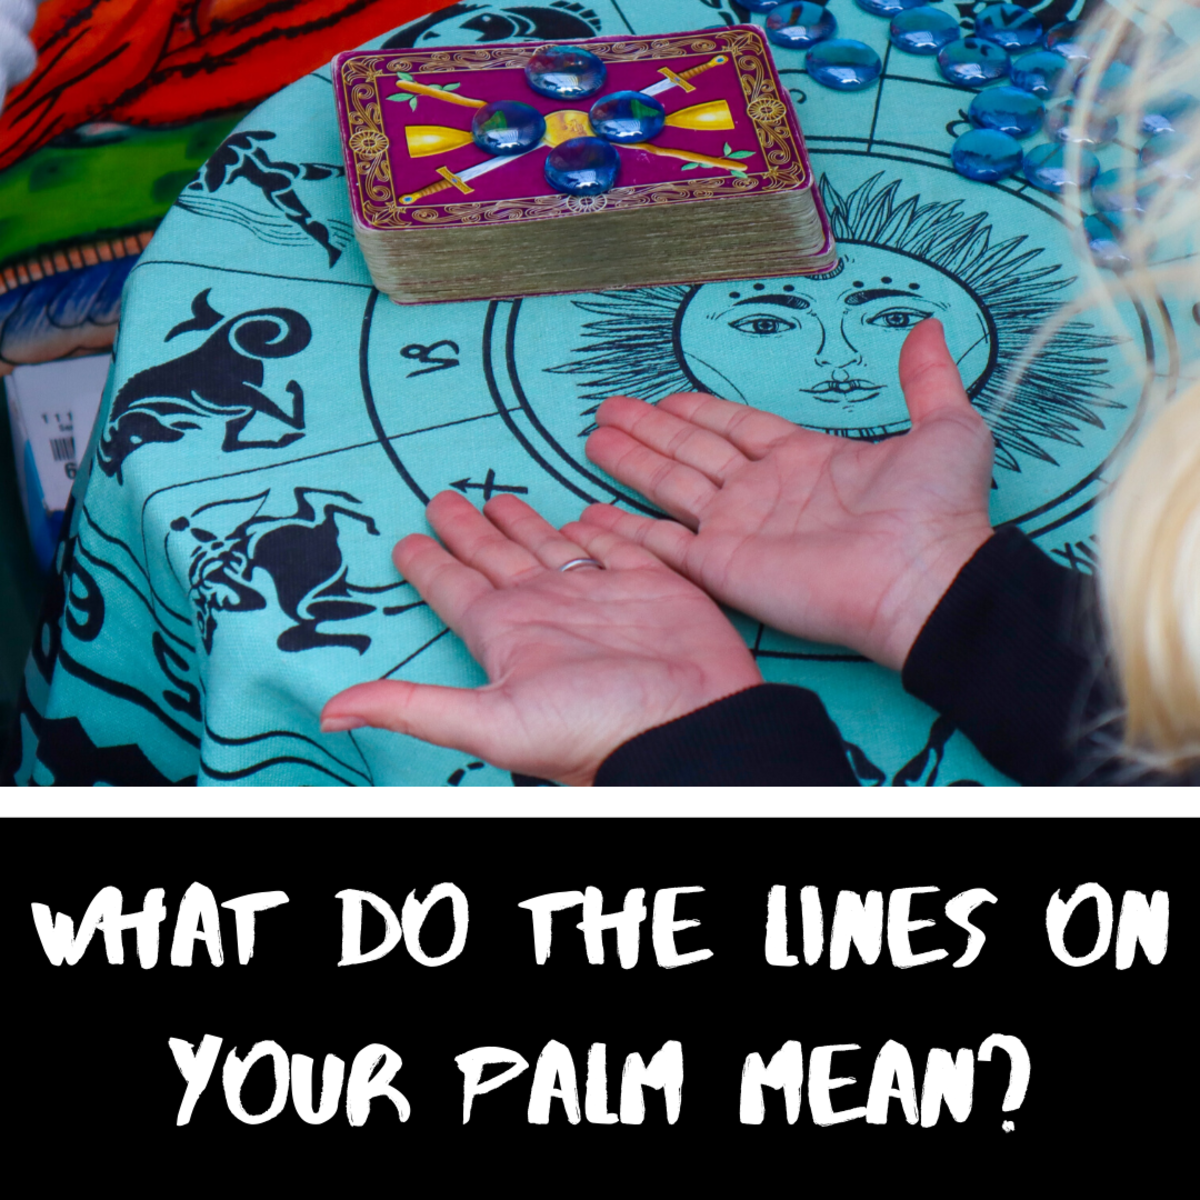 Read on to learn what the lines on your palm mean.